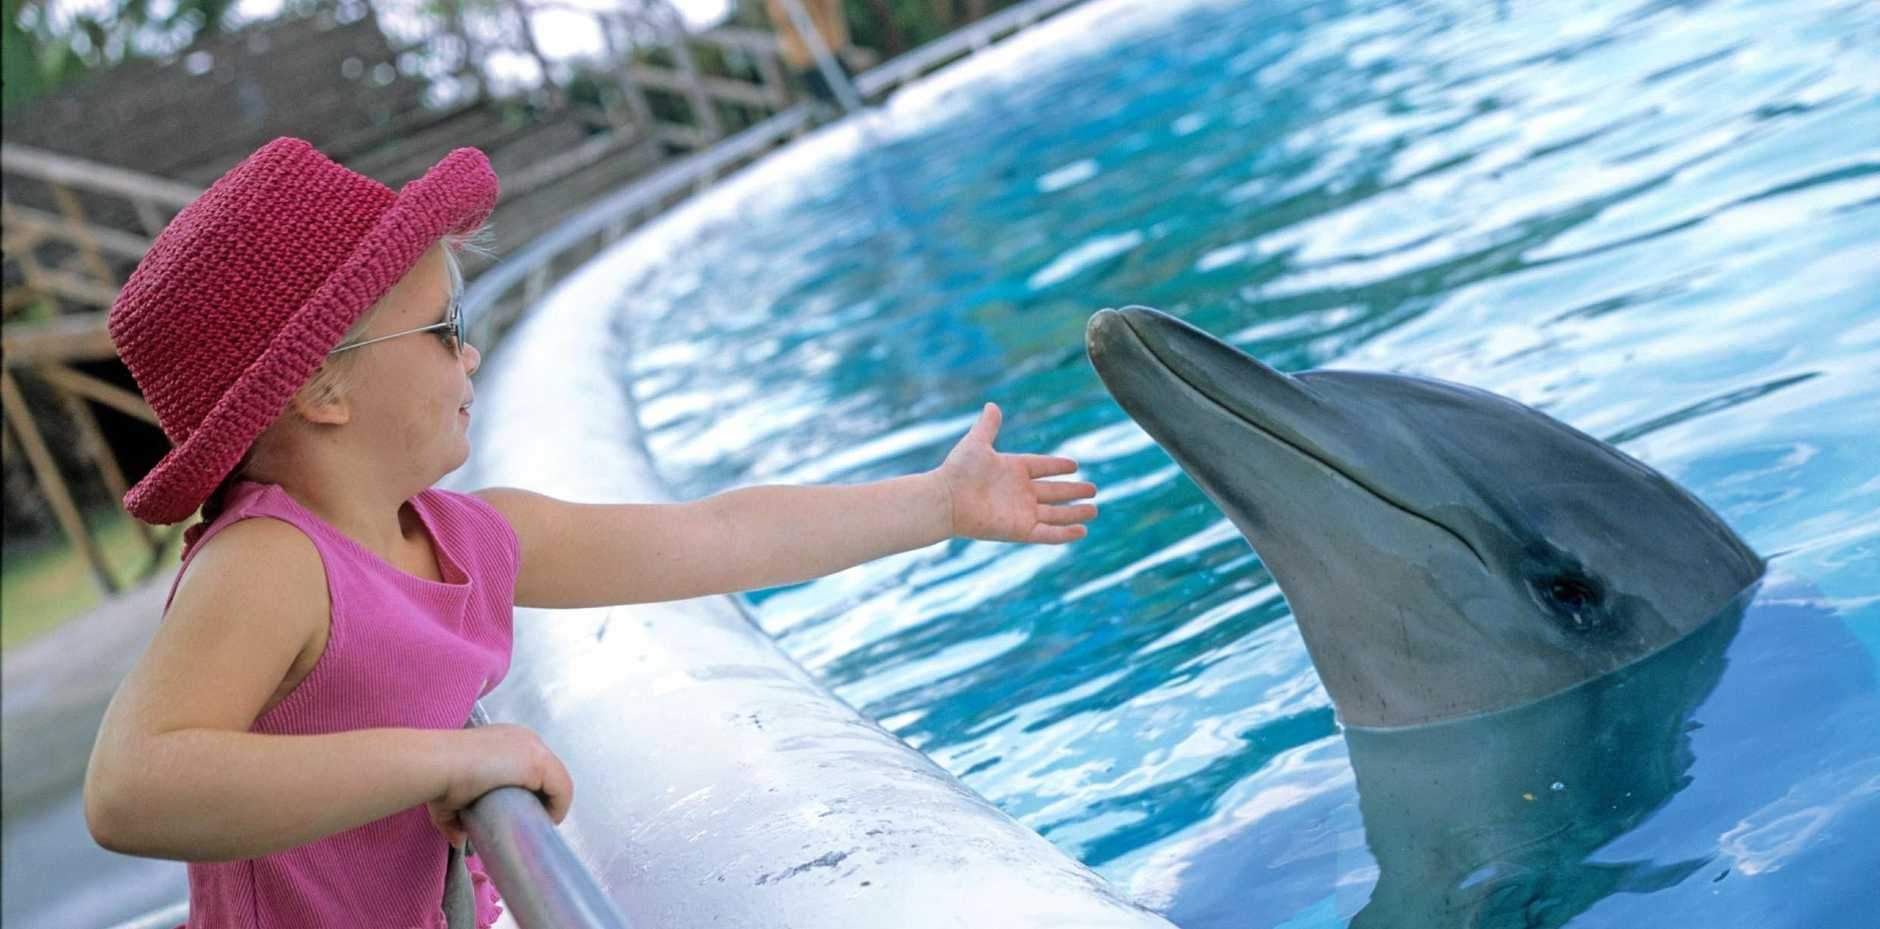 Dolphin Marine Magic's five dolphins could be relocated to a sea pen in the harbour if the alternative turns out to be feasible and in the dolphin's best interests.